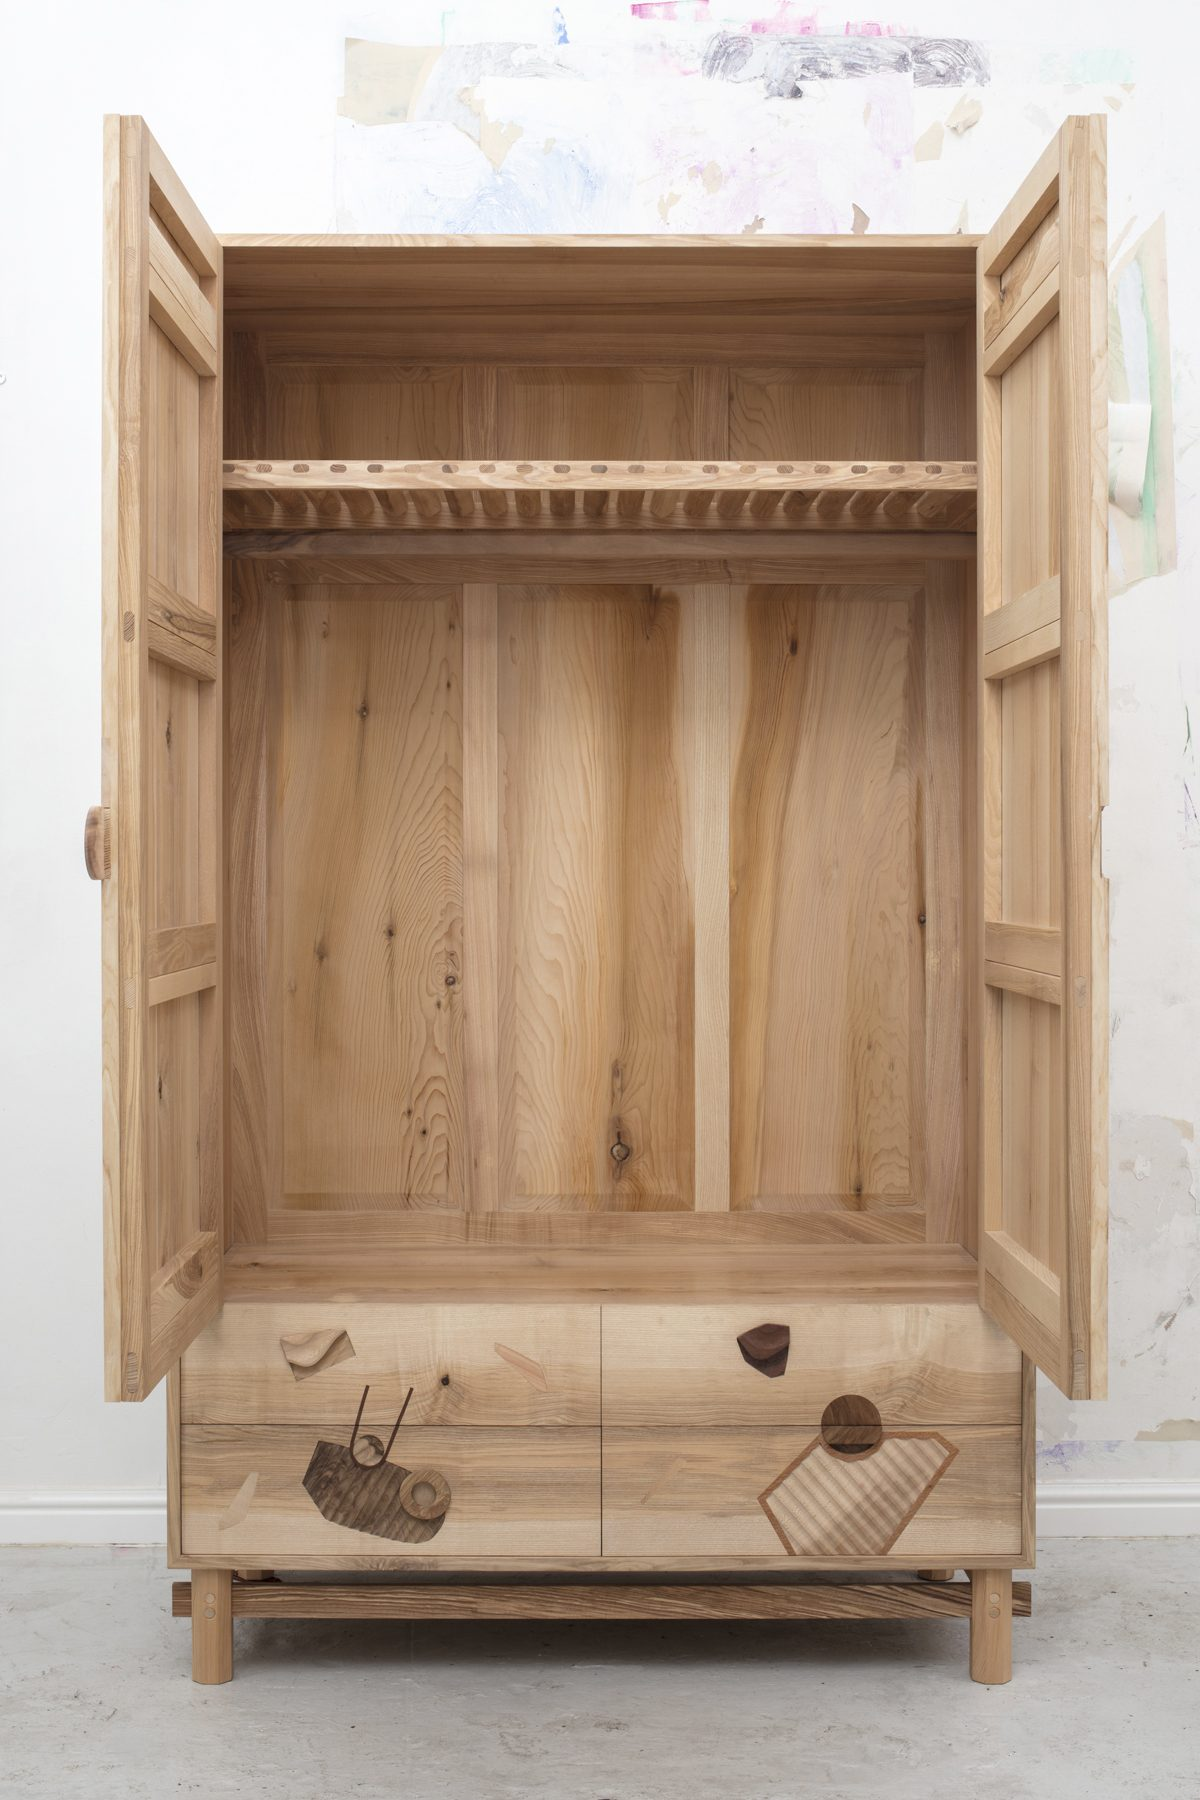 Jan Hendzel Studio open wardrobe what lies beneath